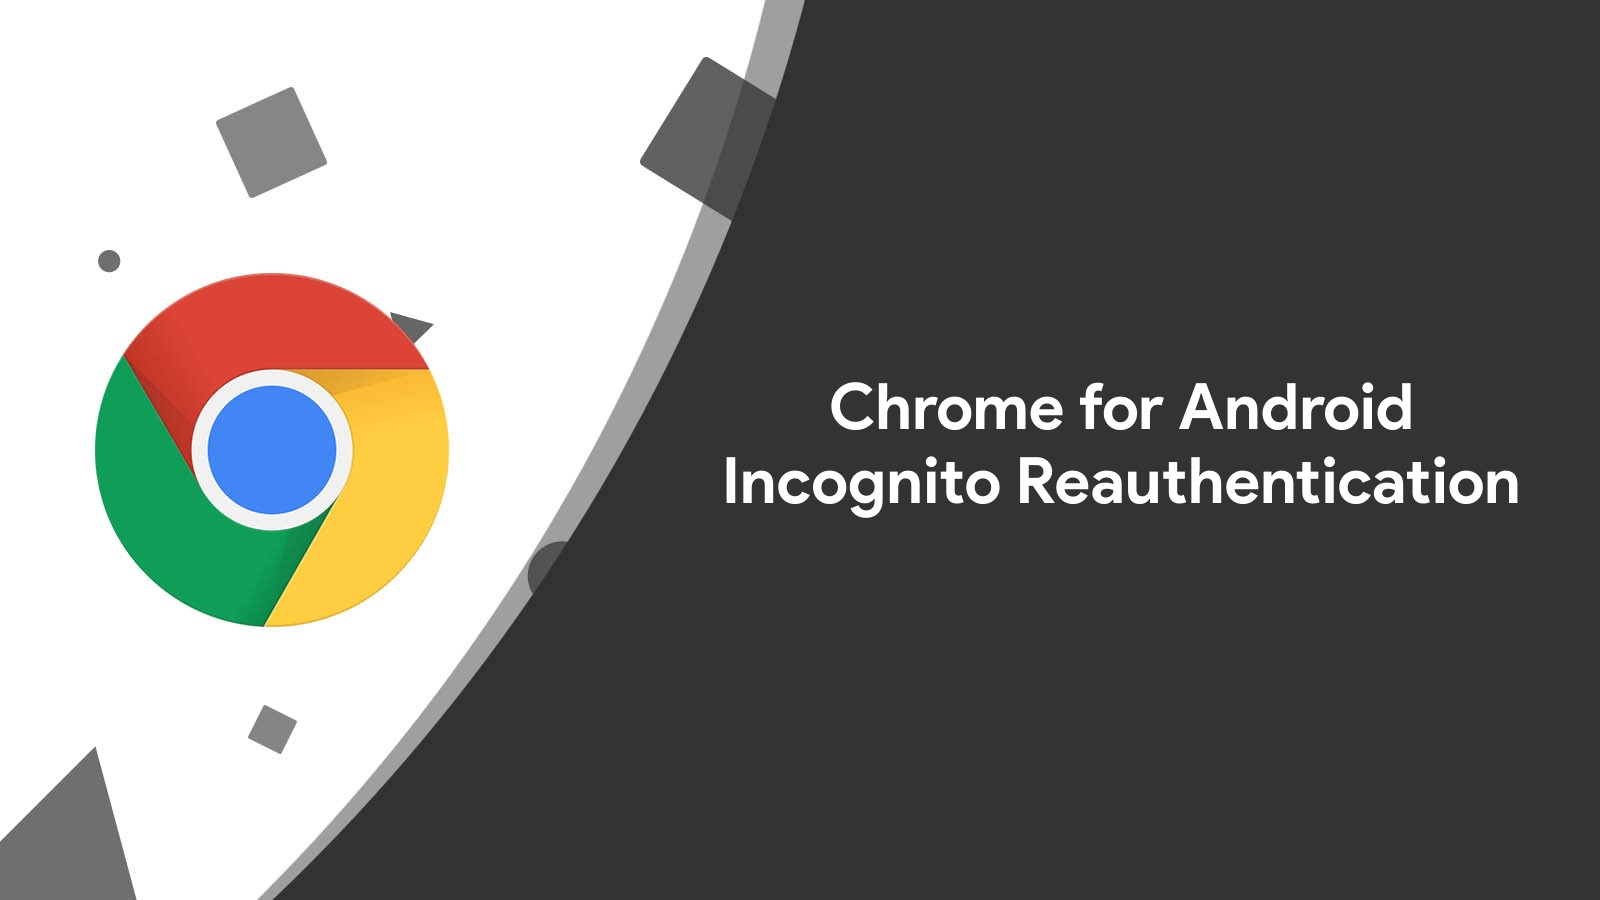 Incognito Mode on Chrome for Android will make you reauthenticate to access tabs again